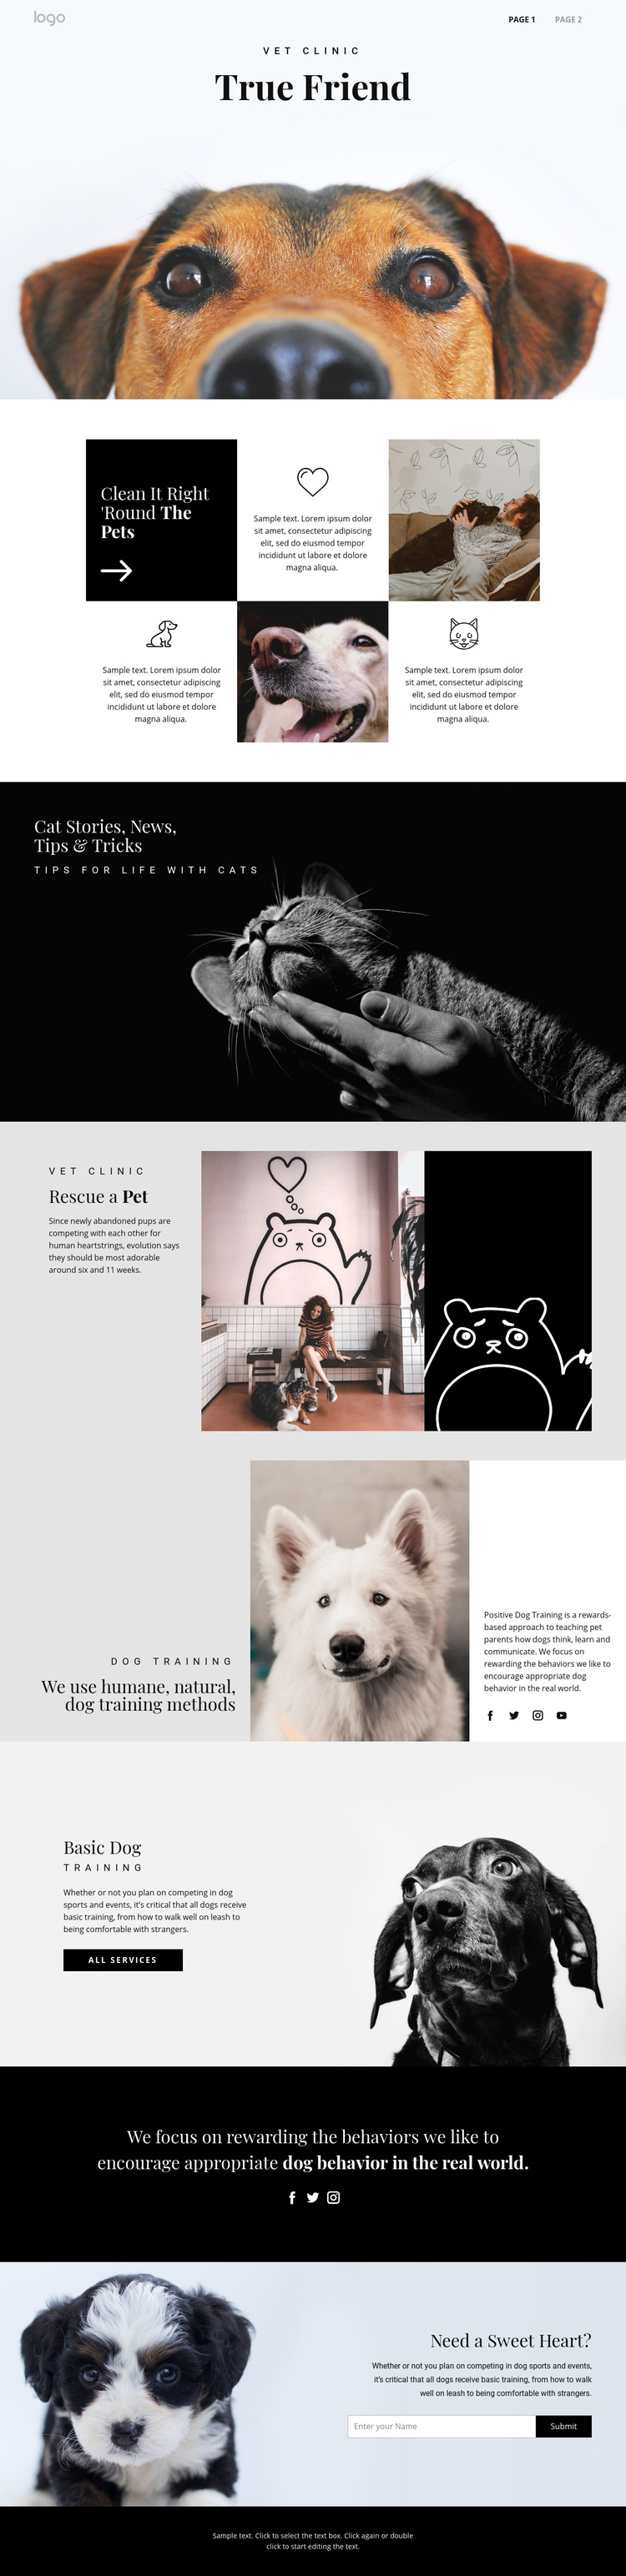 Finding your true friend pet Homepage Design